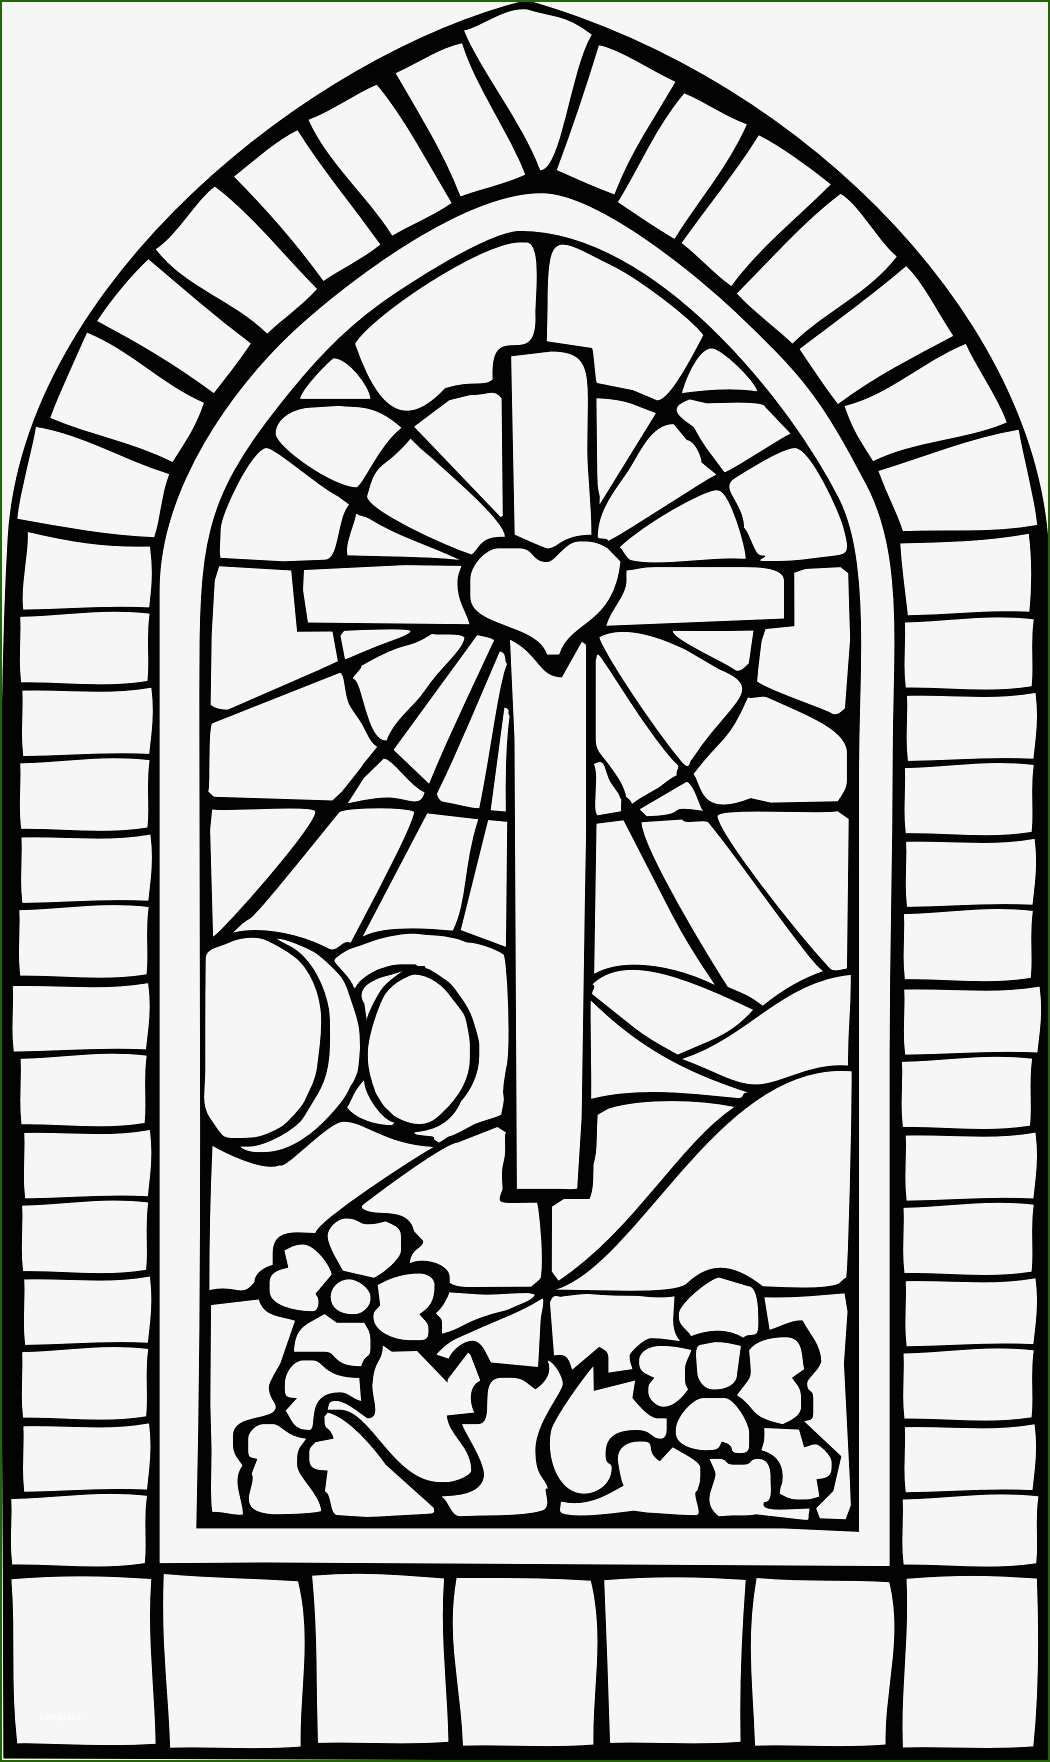 Unusual Stained Glass Window Template In 2020 Cross Coloring Page Easter Coloring Pages Easter Sunday School